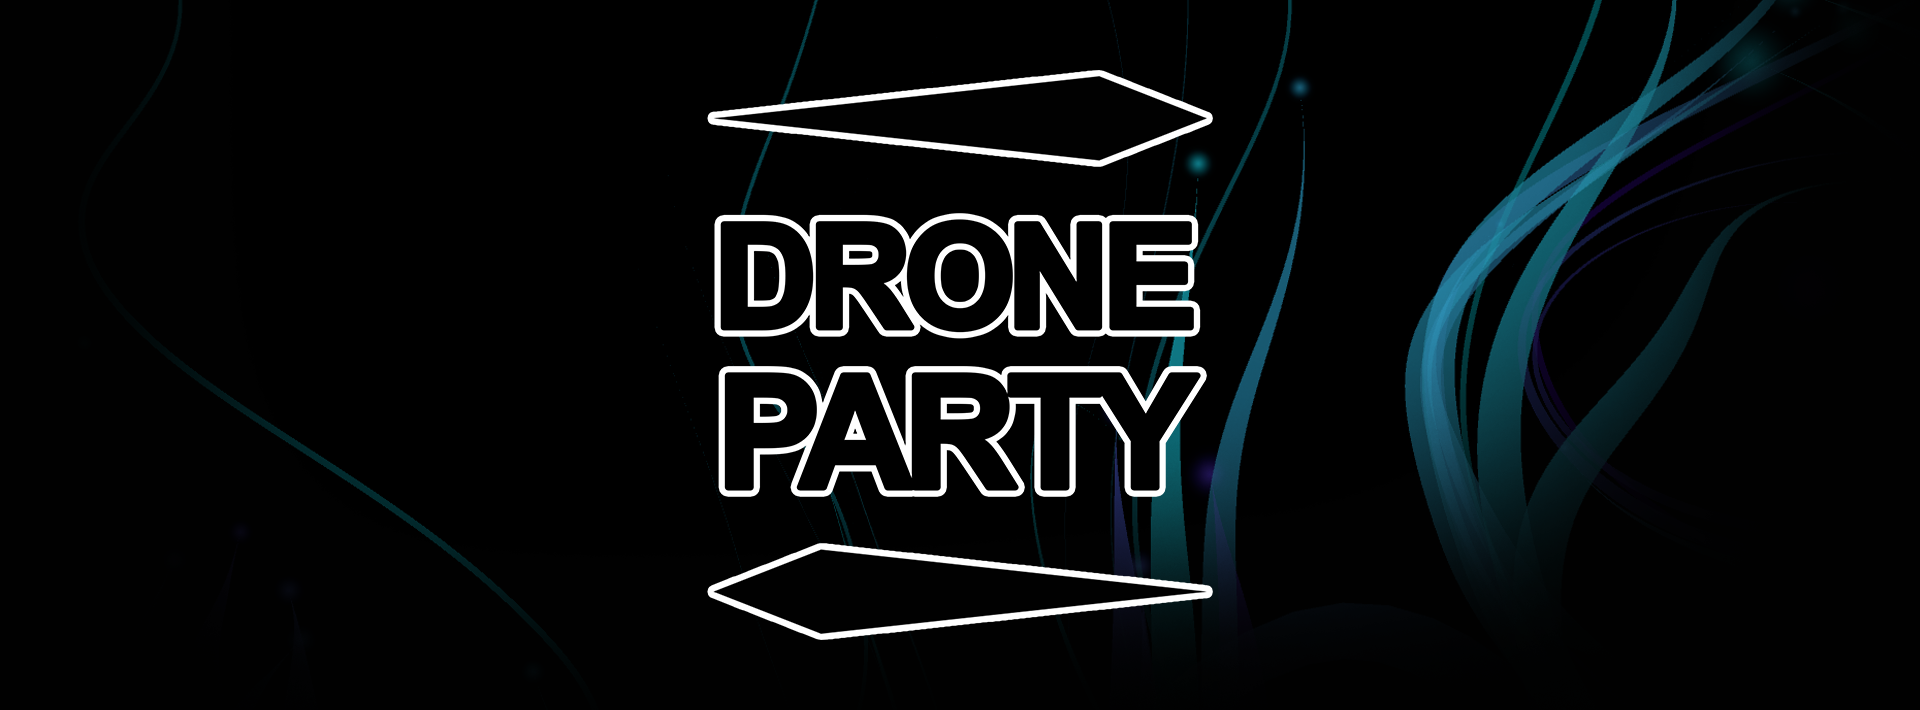 Drone Party